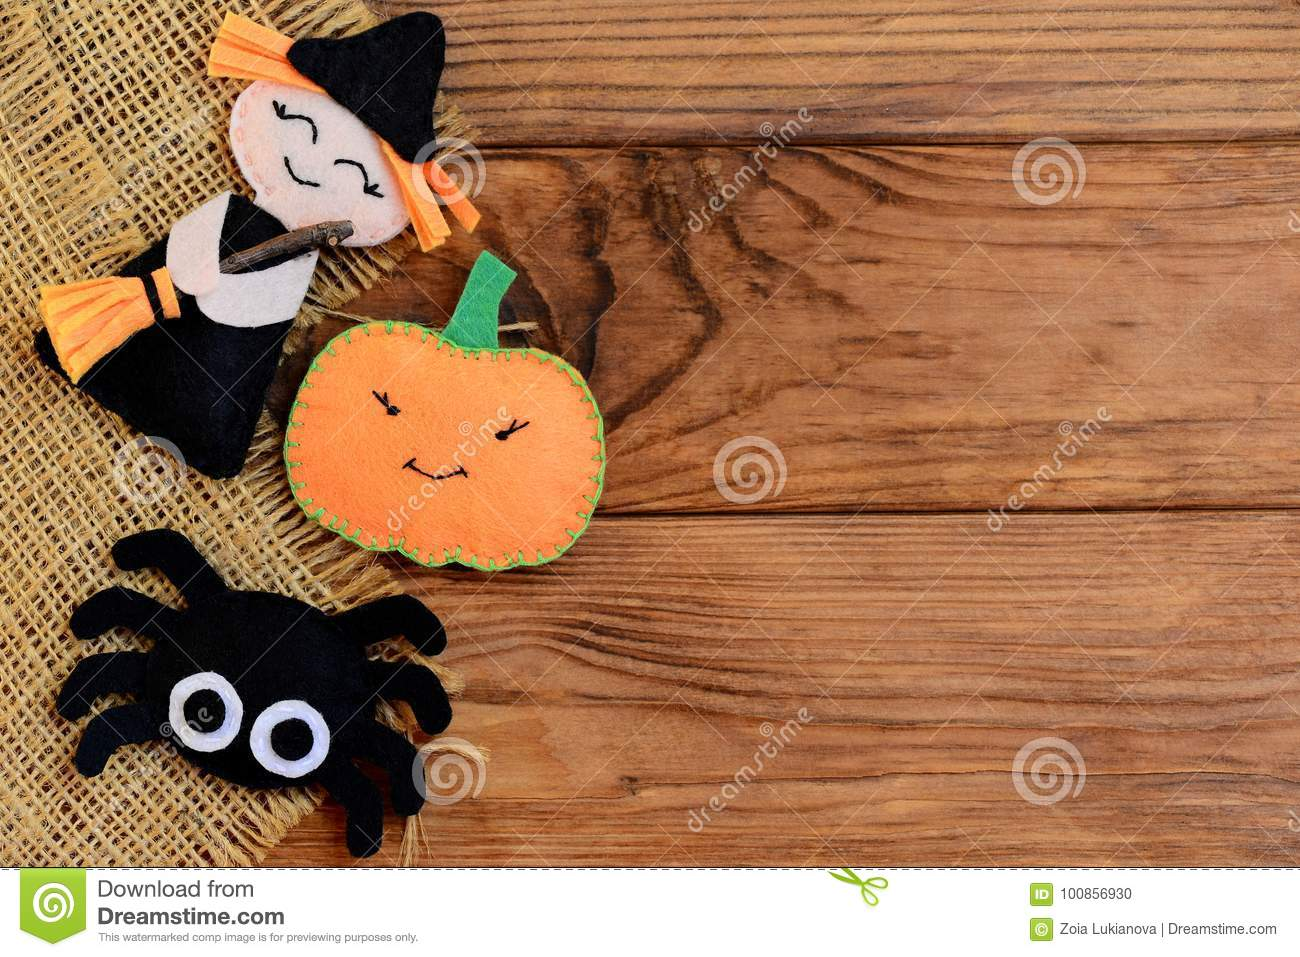 easy halloween crafts. felt witch, pumpkin, spider ornaments on a